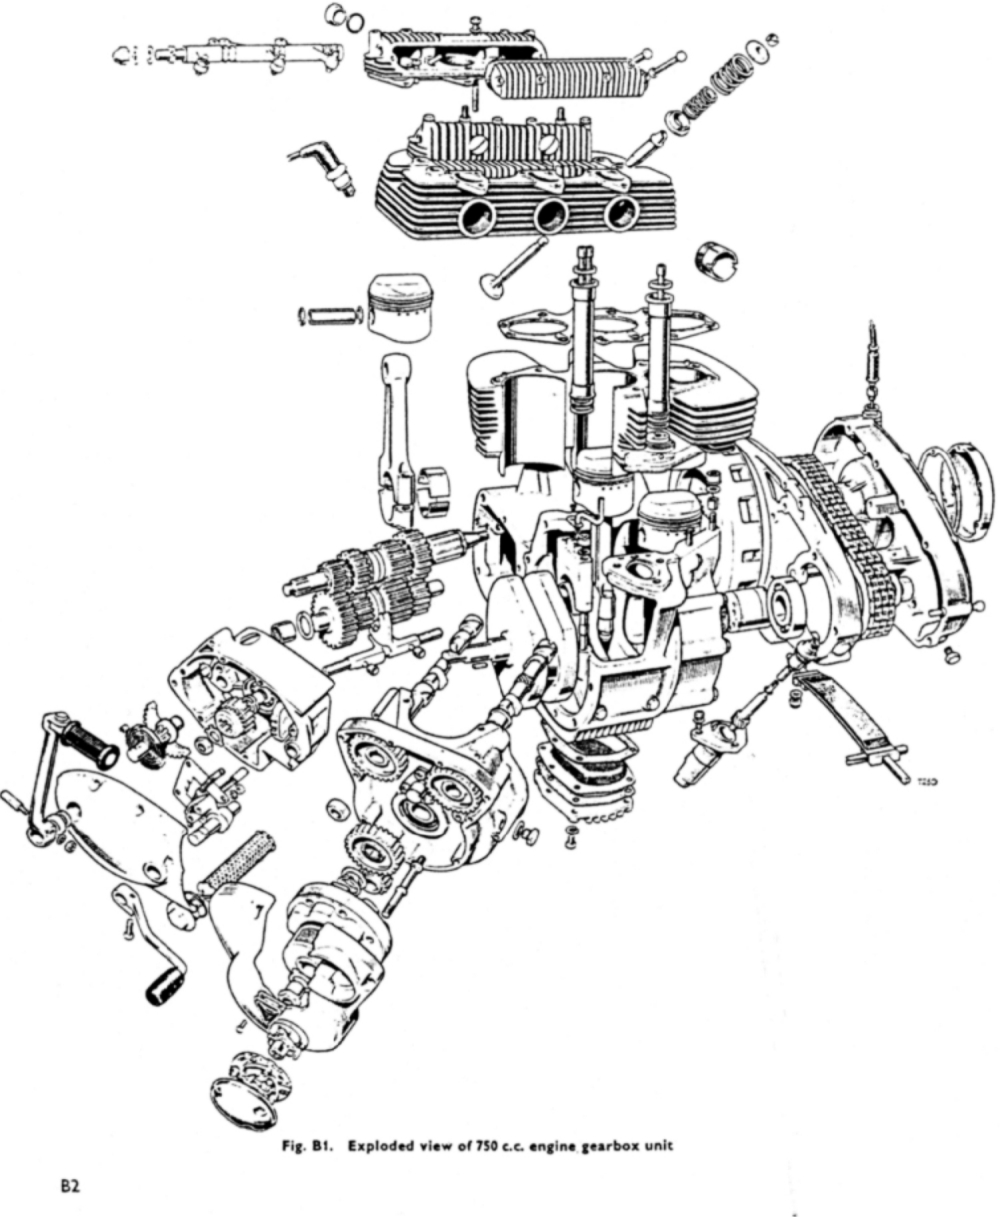 Vintage Triumph Engine Diagram FULL HD Version Engine Diagram - LOUV-DIAGRAM .JAMAISVU-JV.ITDiagram Database And Images